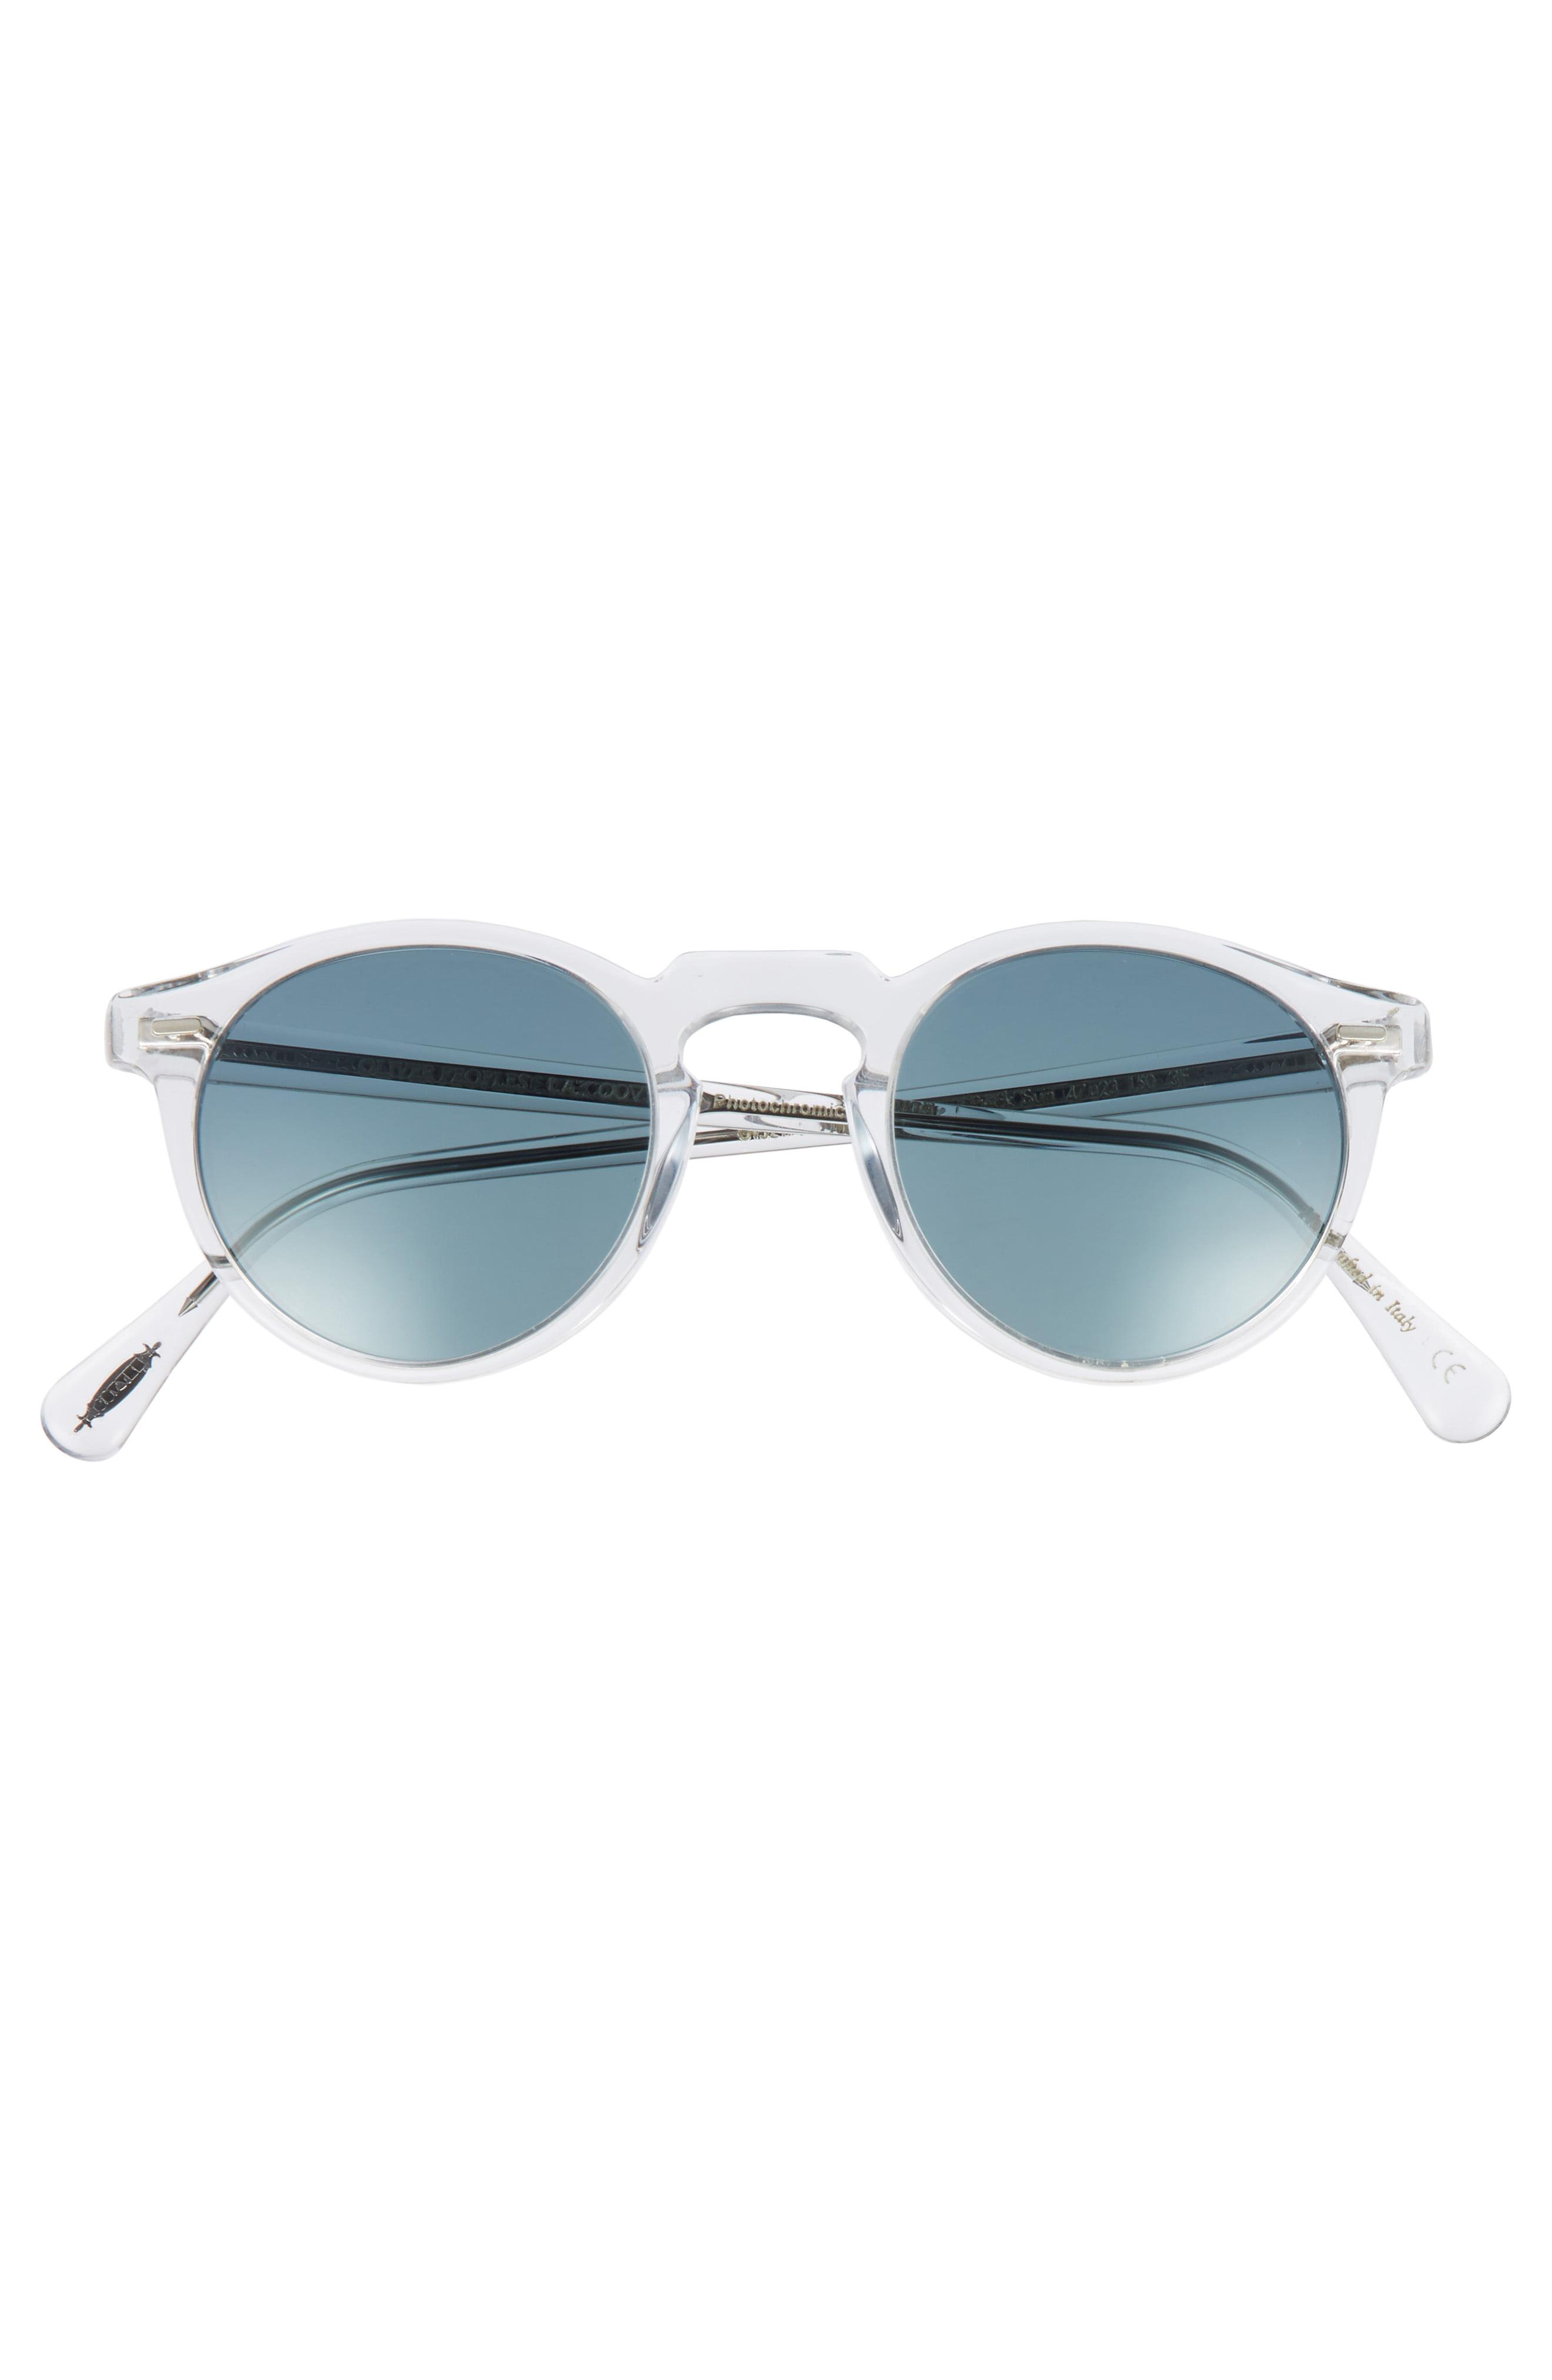 a217e08147b Oliver Peoples - Blue Gregory Peck 47mm Round Sunglasses - Crystal  Indigo  for Men -. View fullscreen